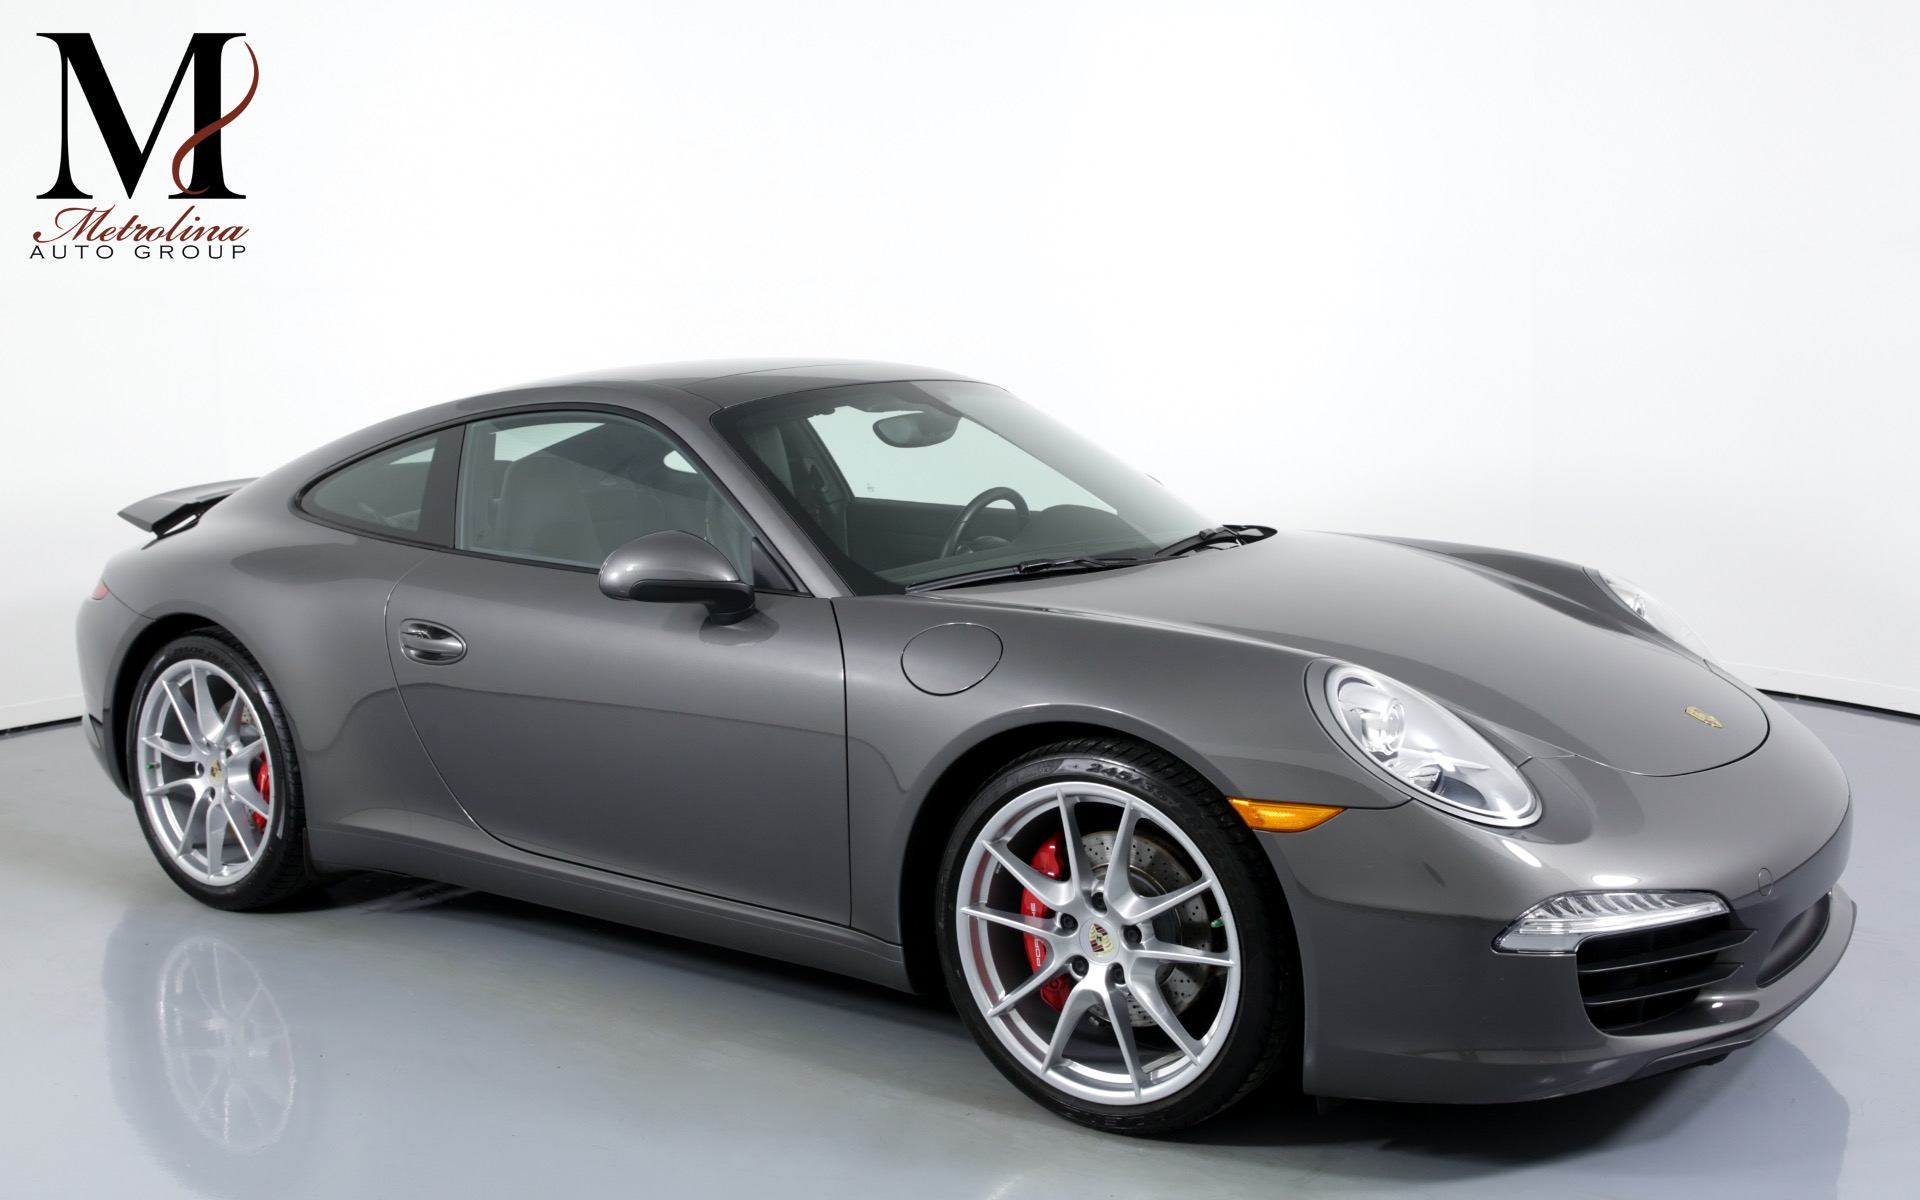 Used 2012 Porsche 911 Carrera S for sale Sold at Metrolina Auto Group in Charlotte NC 28217 - 1